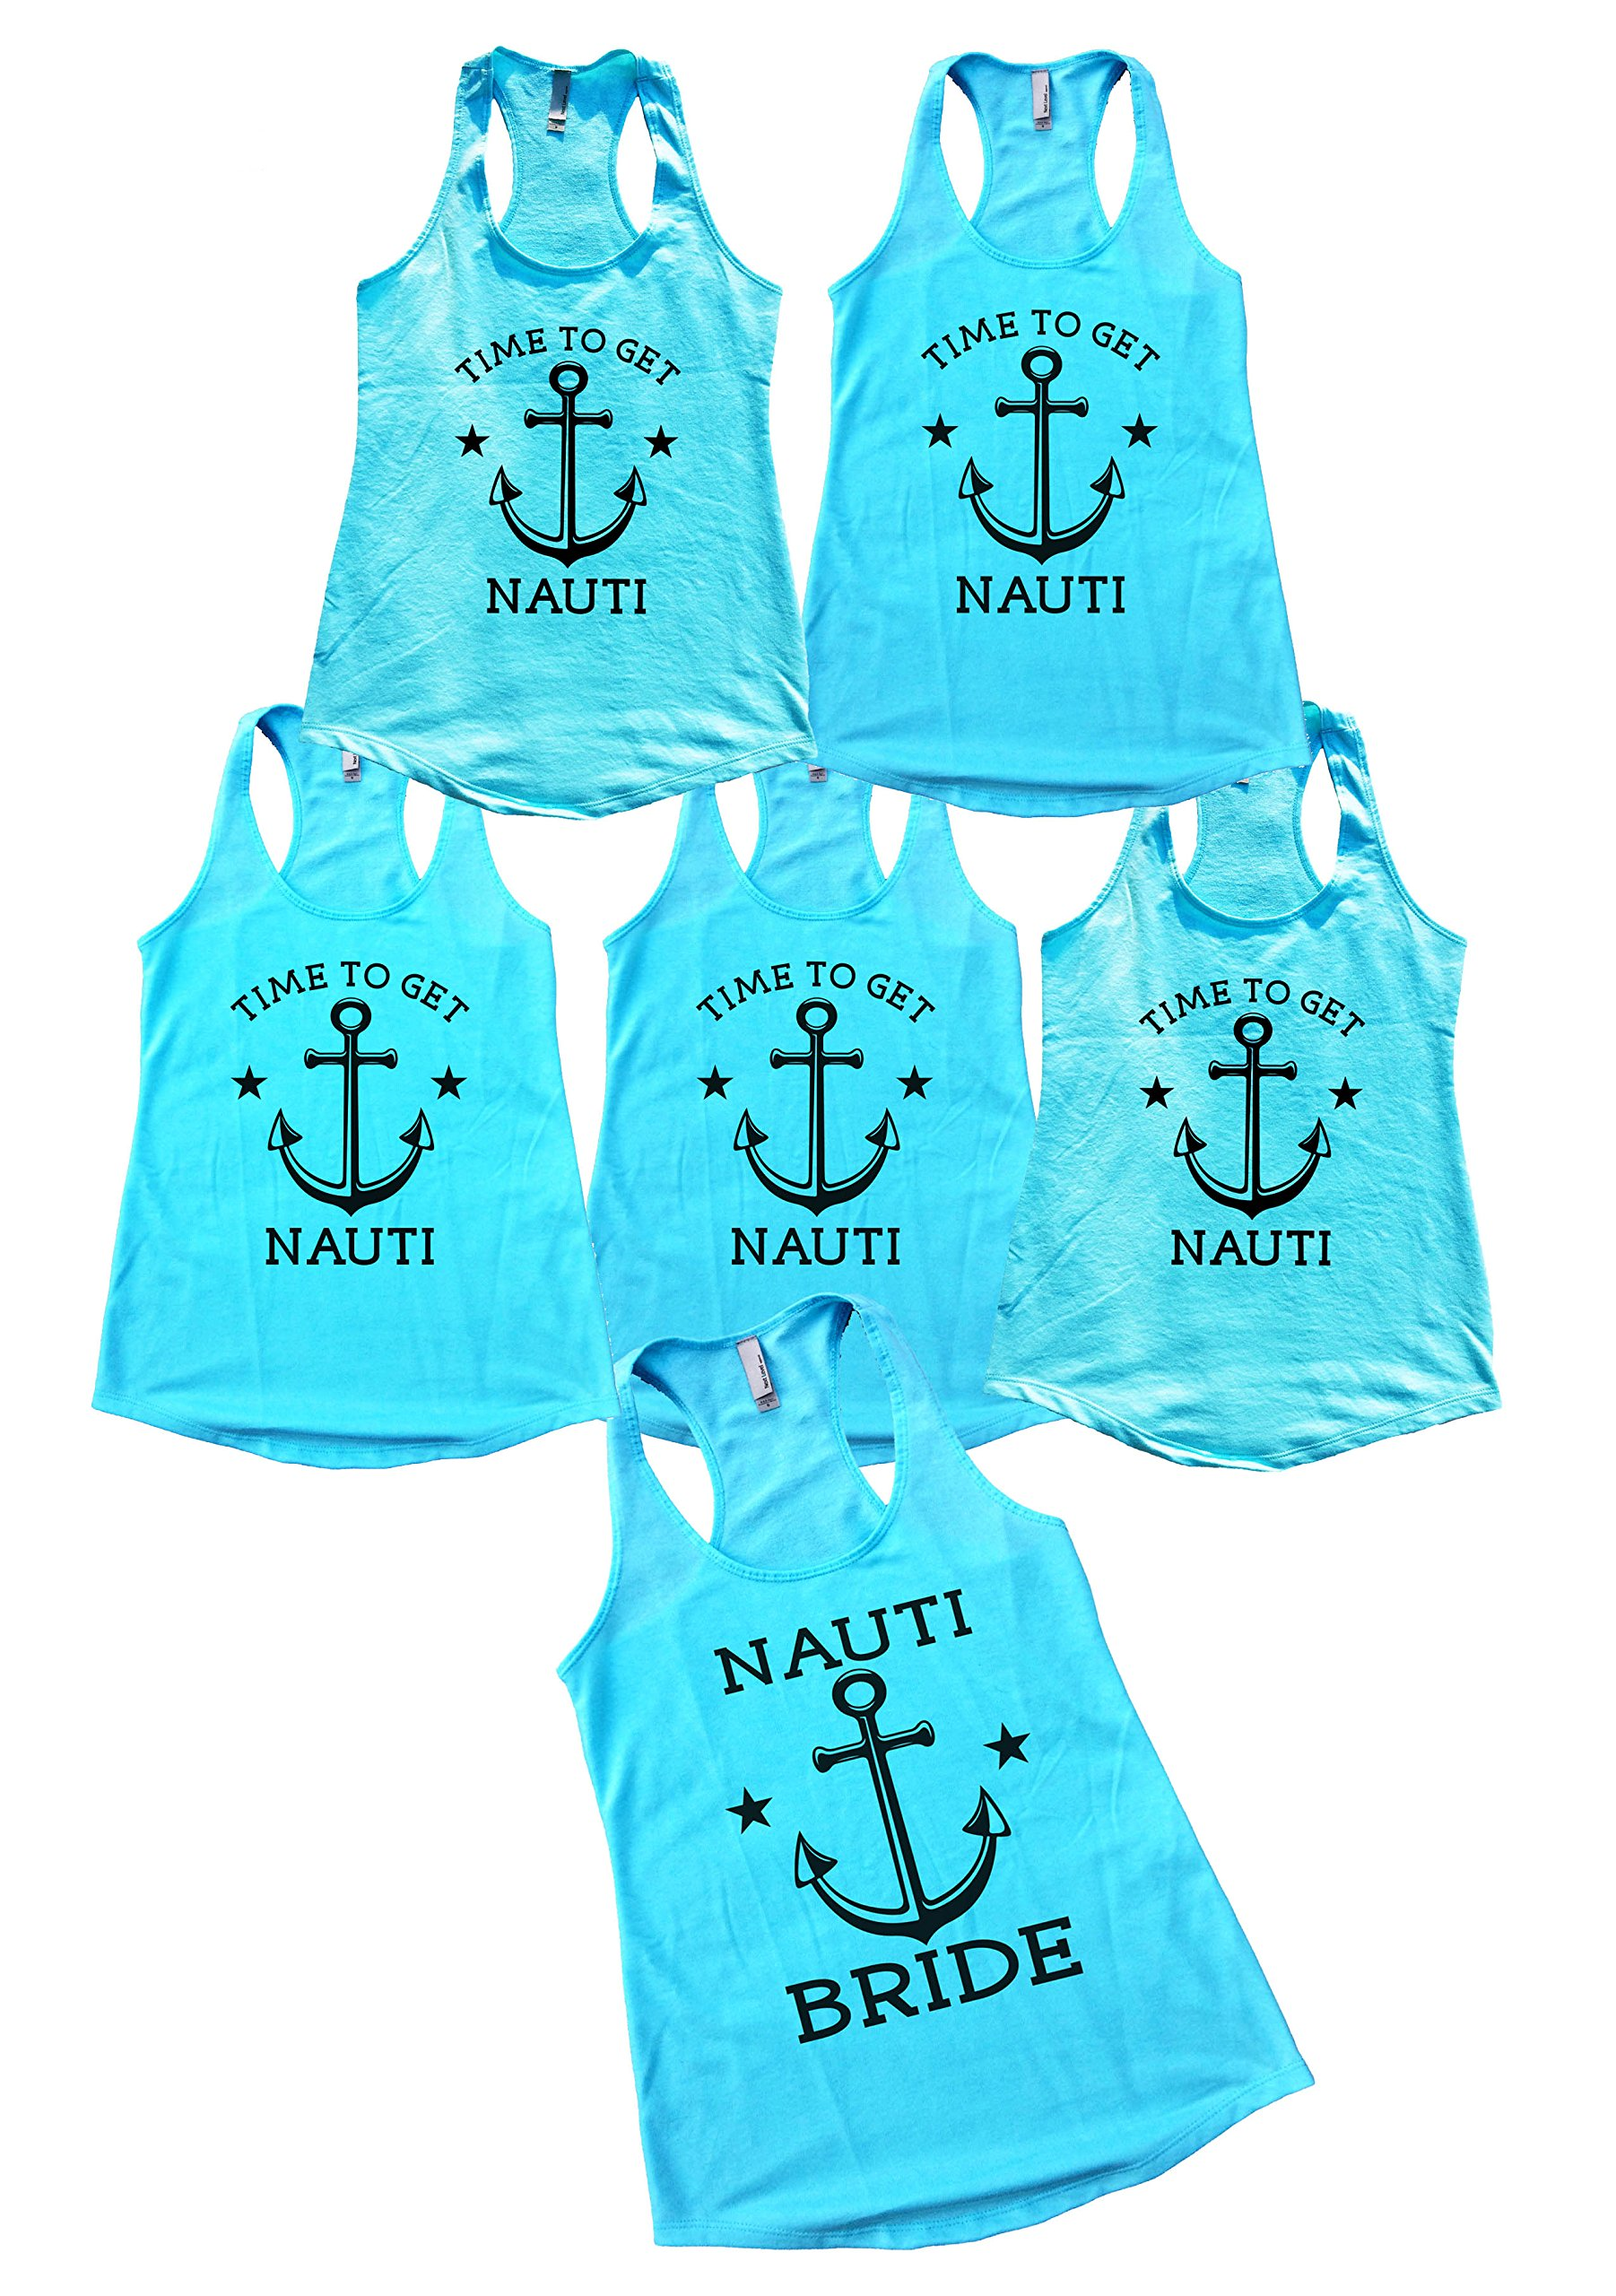 Bridal Party Tank Top Set 6 Pieces Lets Get Nauti Bachlorette Party - Funny Threadz (Message Us The Sizes) by Funny Threadz